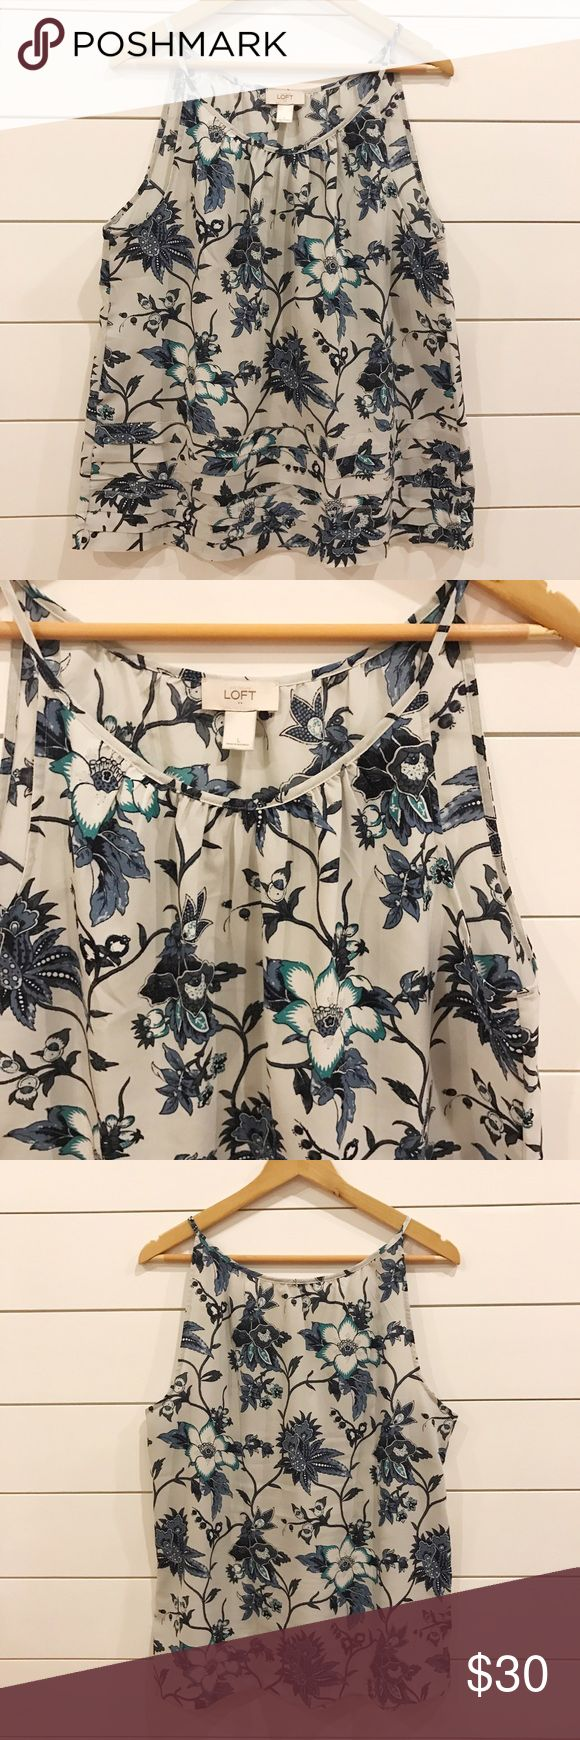 Strappy Cami Top This top can be worn on the weekends with denim shorts or to the office under a blazer or cardi! Spaghetti straps and slight racerback. Worn only a handful of times; in excellent condition. 100% Polyester. Machine wash cold. Tumble dry low. LOFT Tops